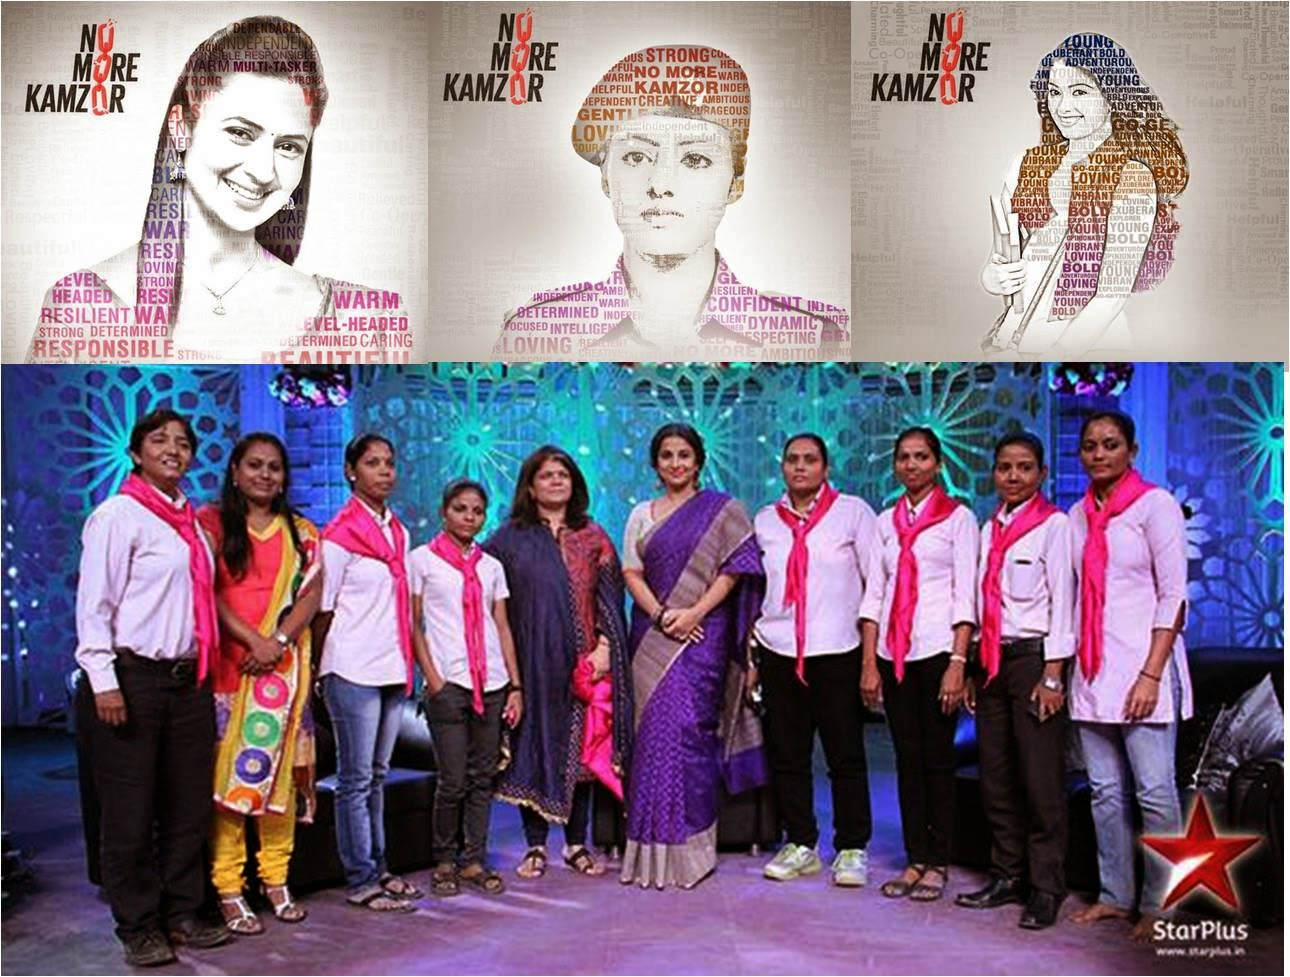 Star Plus Celebrated Women's Day with 'No More Kamzor' Slogan: Star Plus actors Ishita, Sandhya, Veera and Bollywood actress Vidya Balan supporting No More Kamzor show of Star Plus